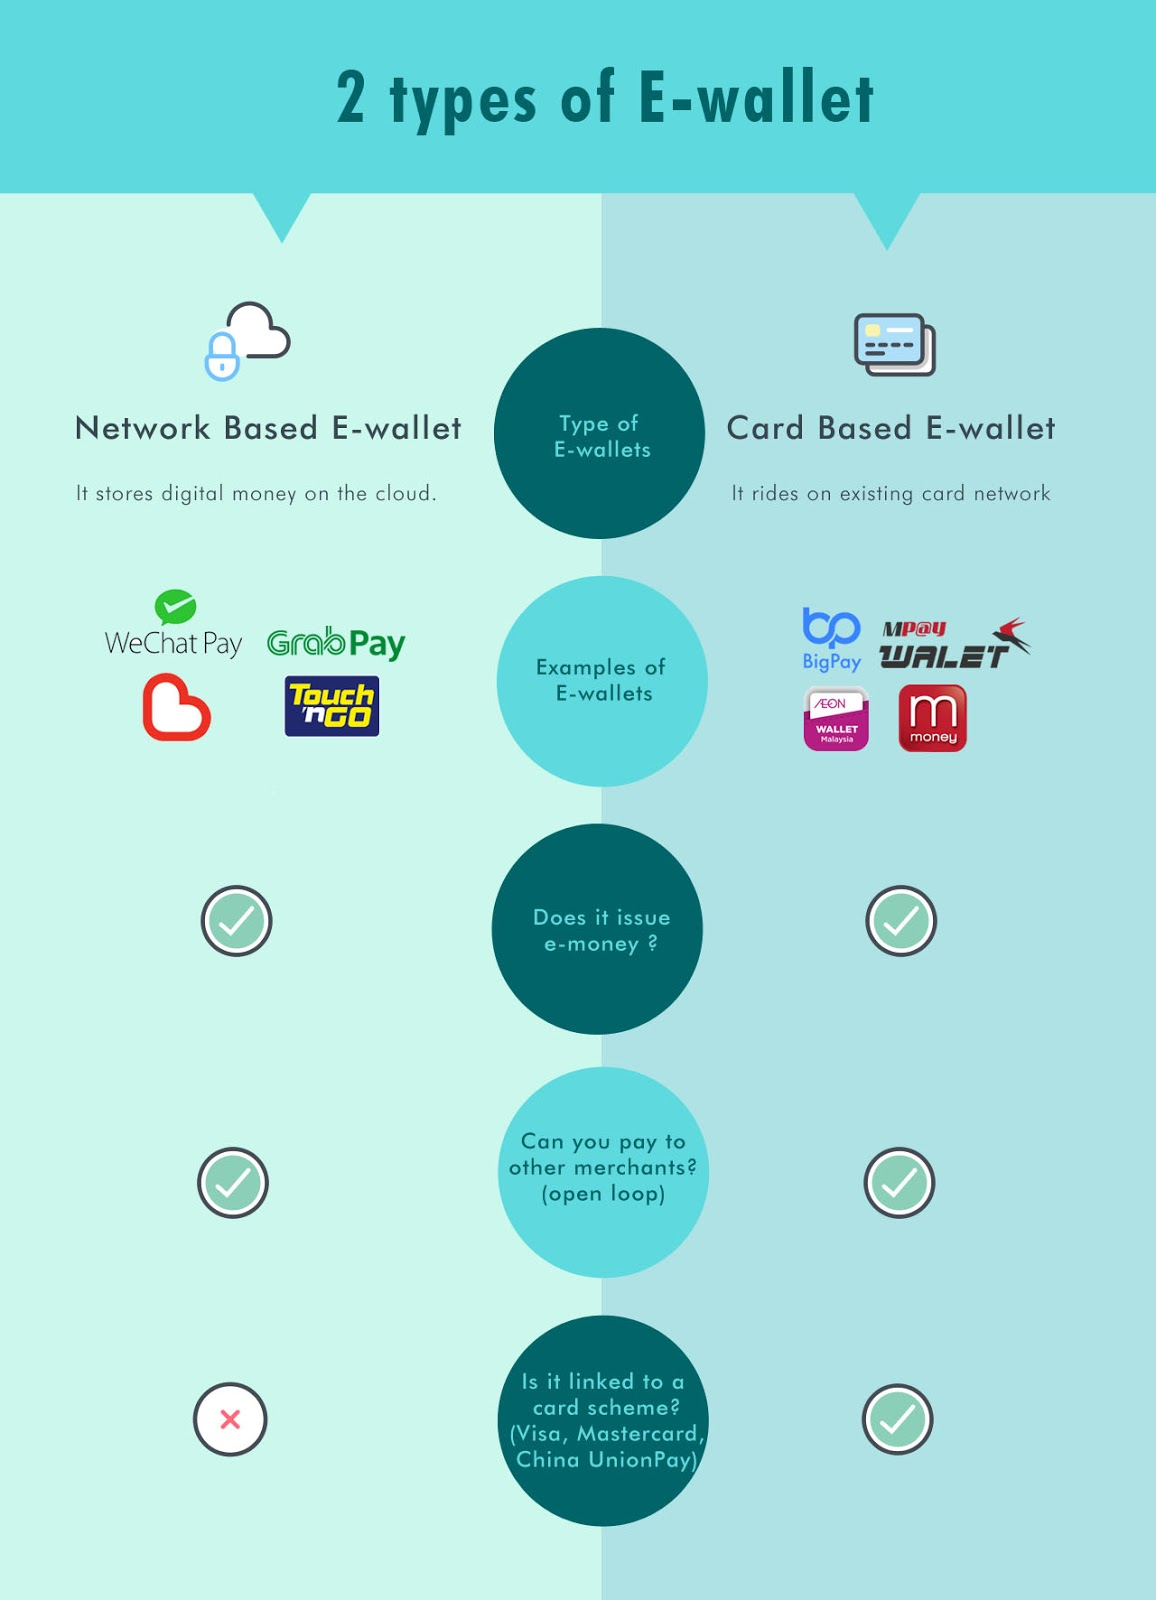 Types of e-wallet